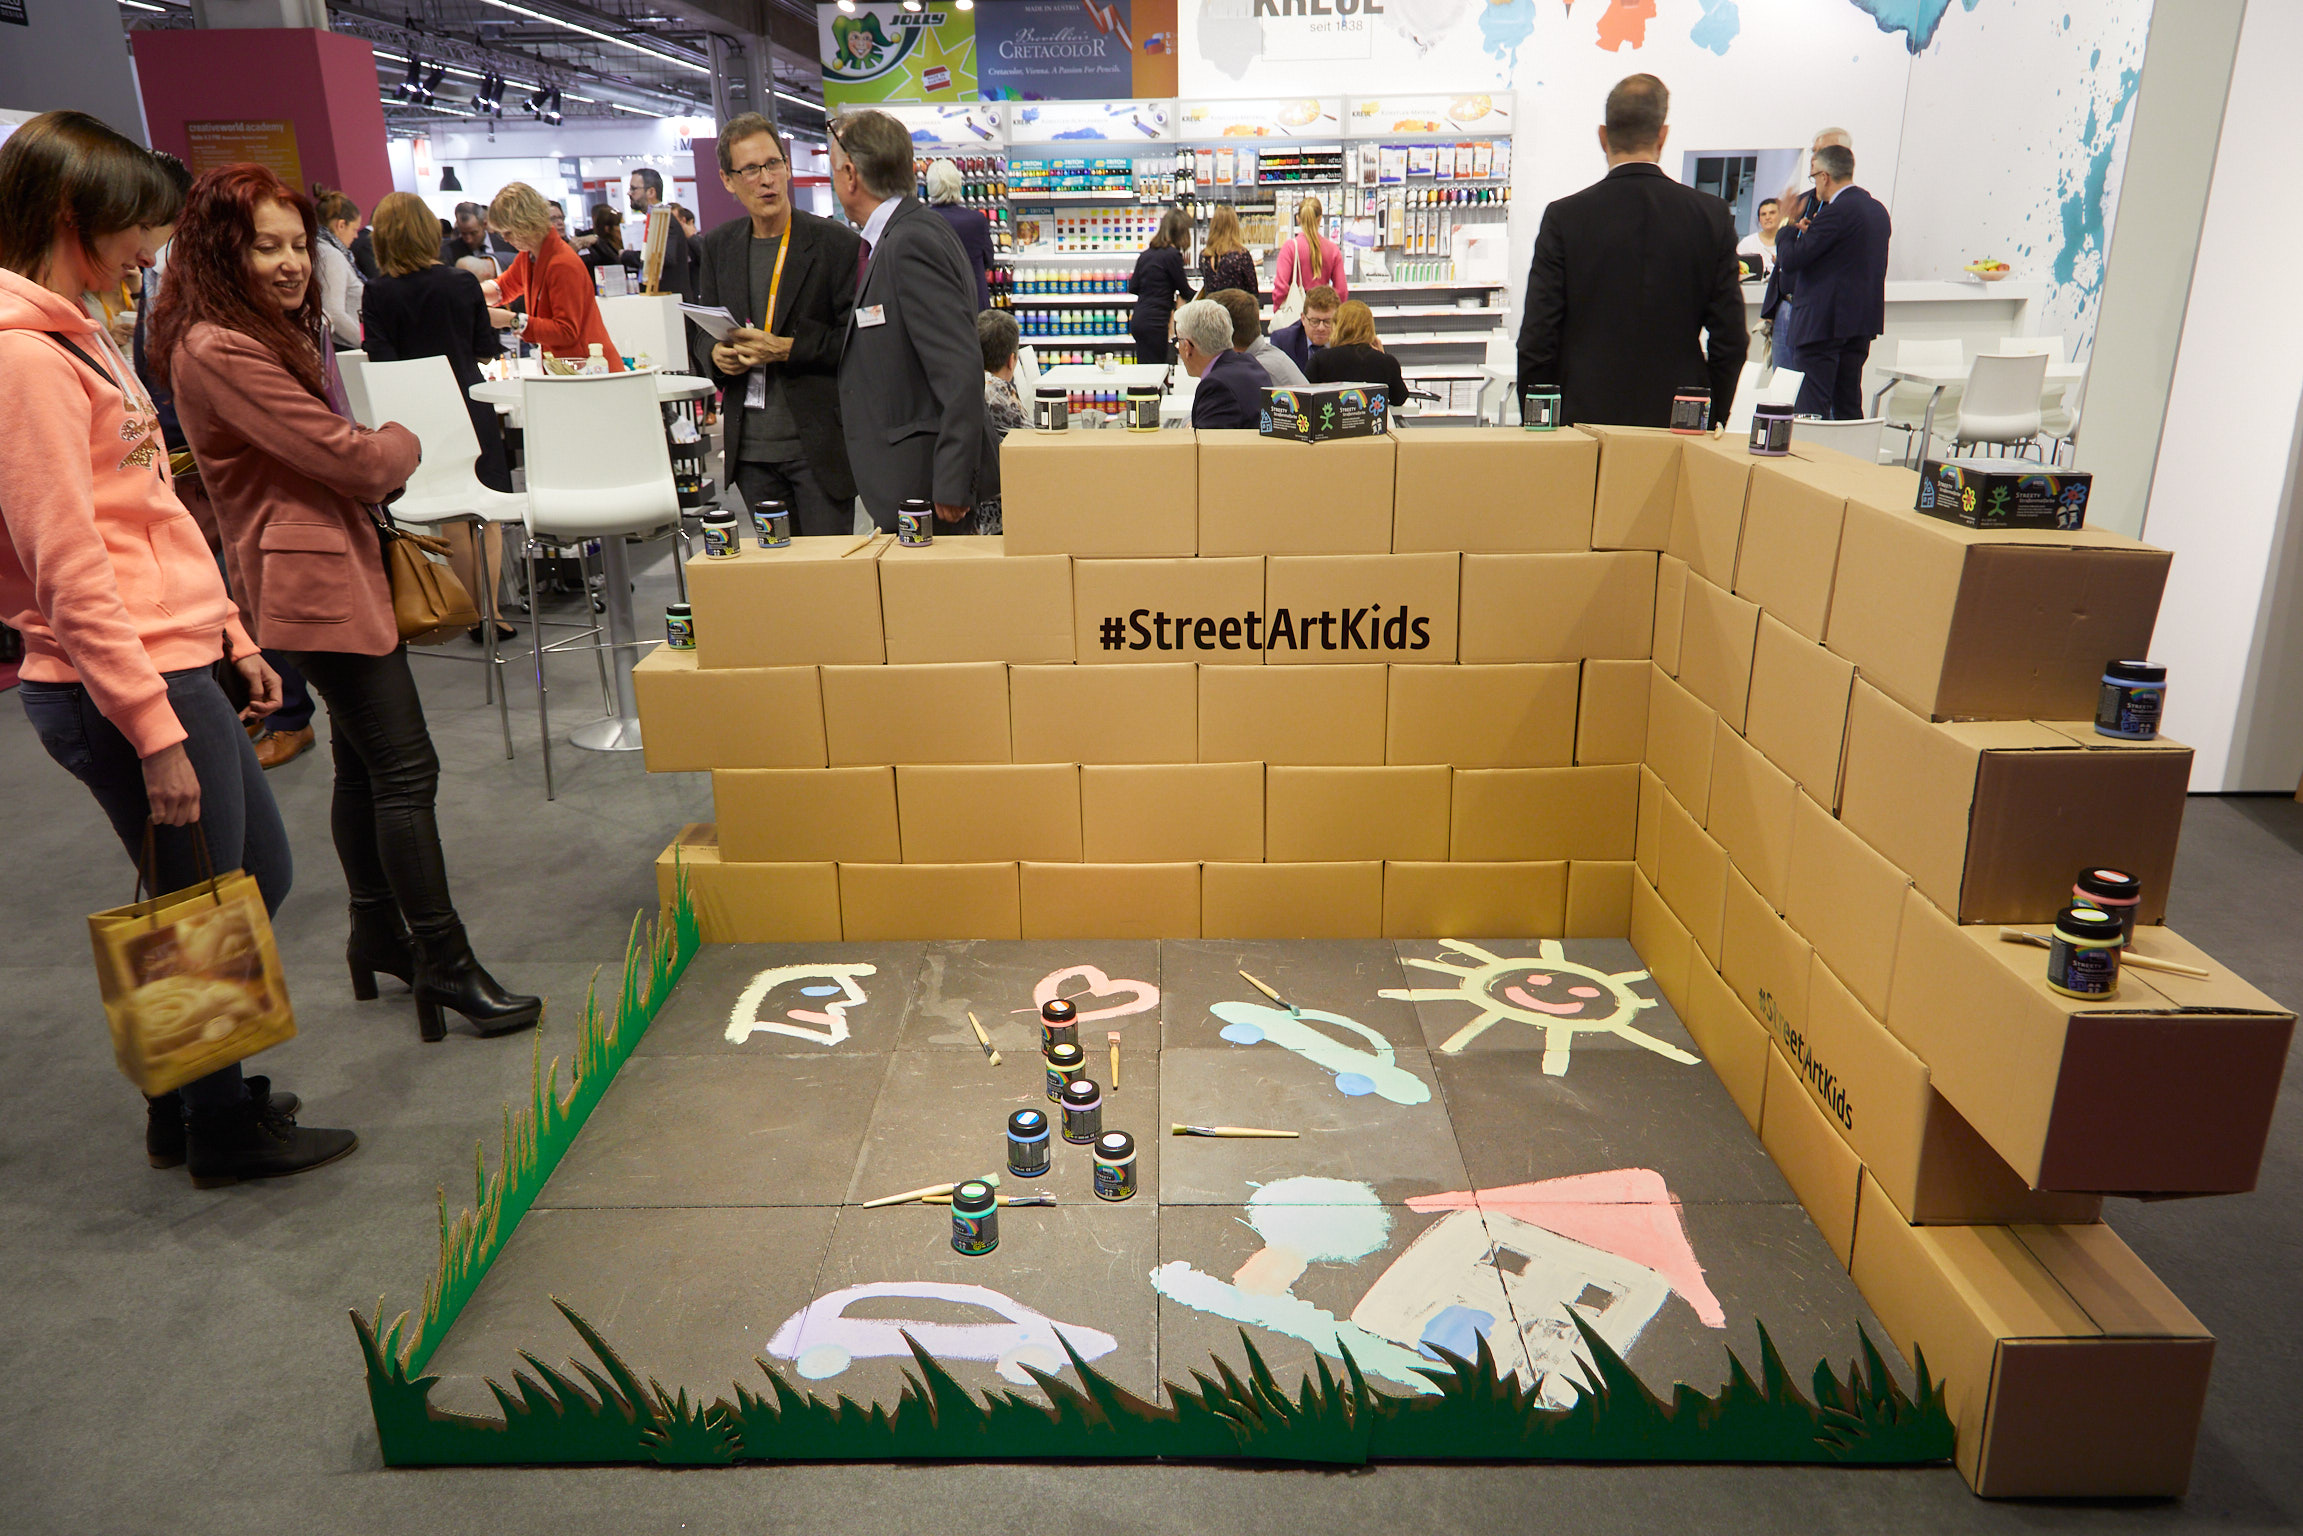 Start early: street art products, even for the little ones at Creativeworld